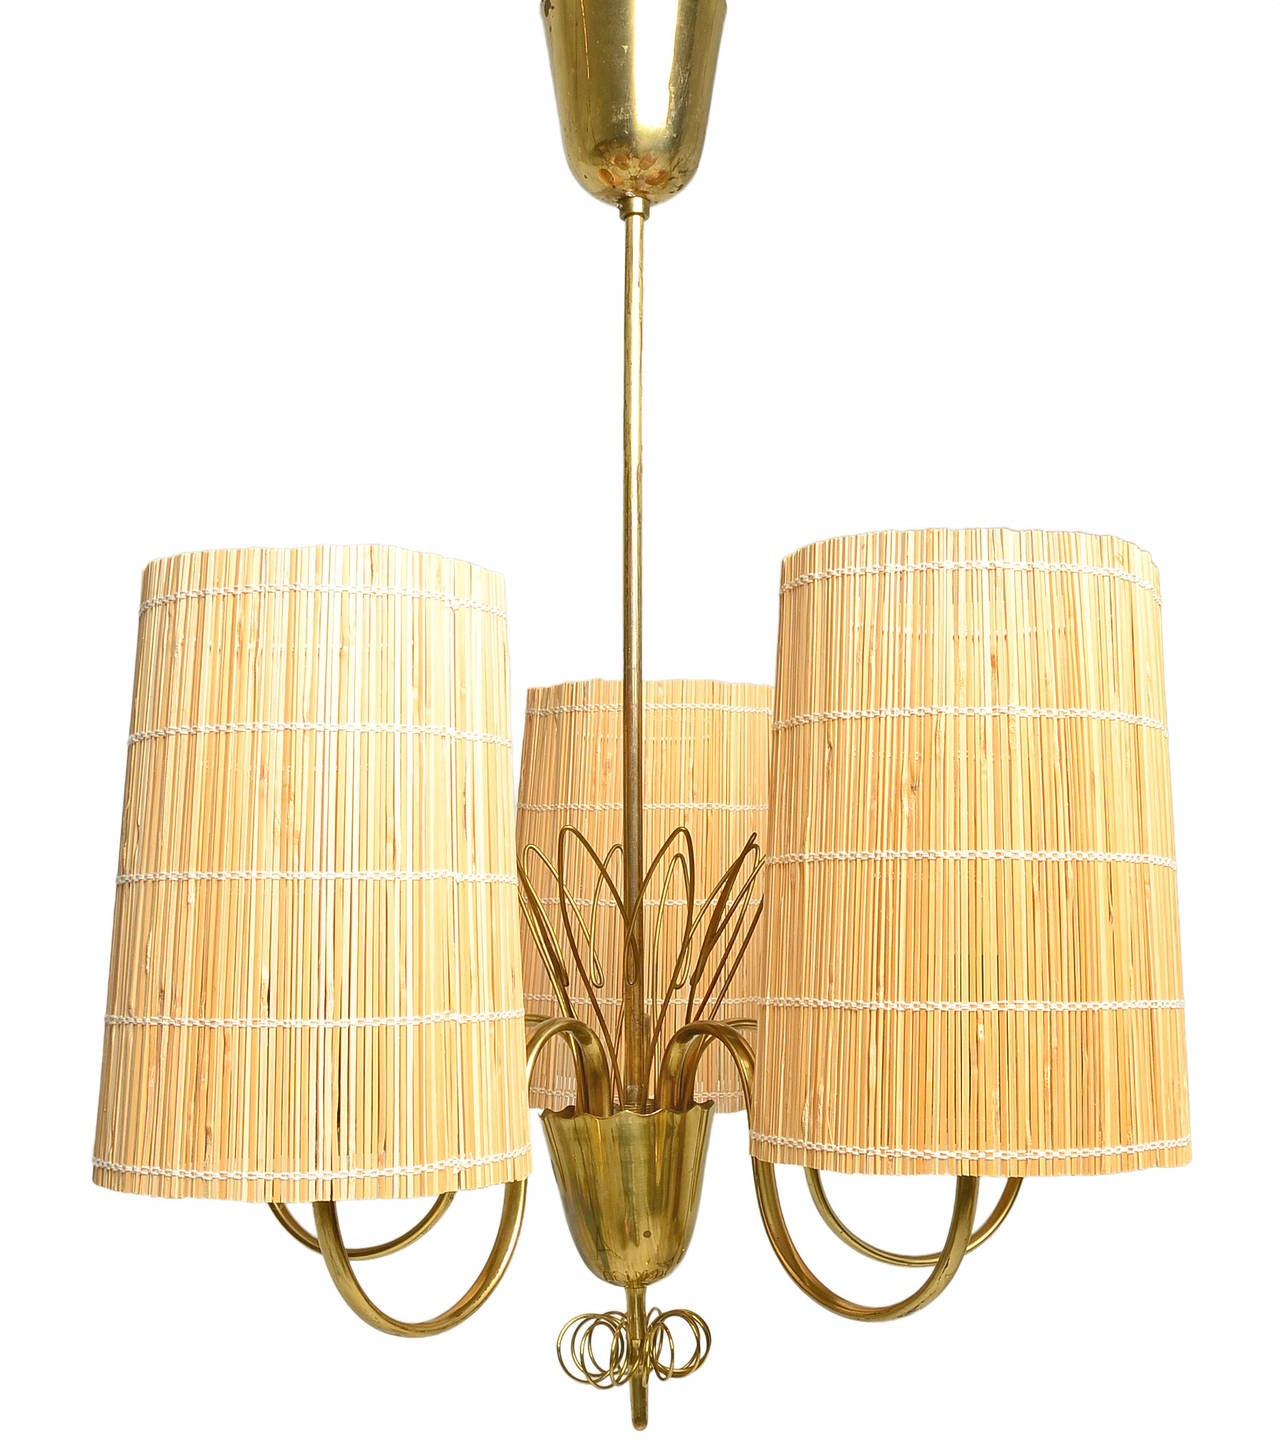 A sophisticated five-arm chandelier in solid brass by Scandinavian master Paavo Tynell.